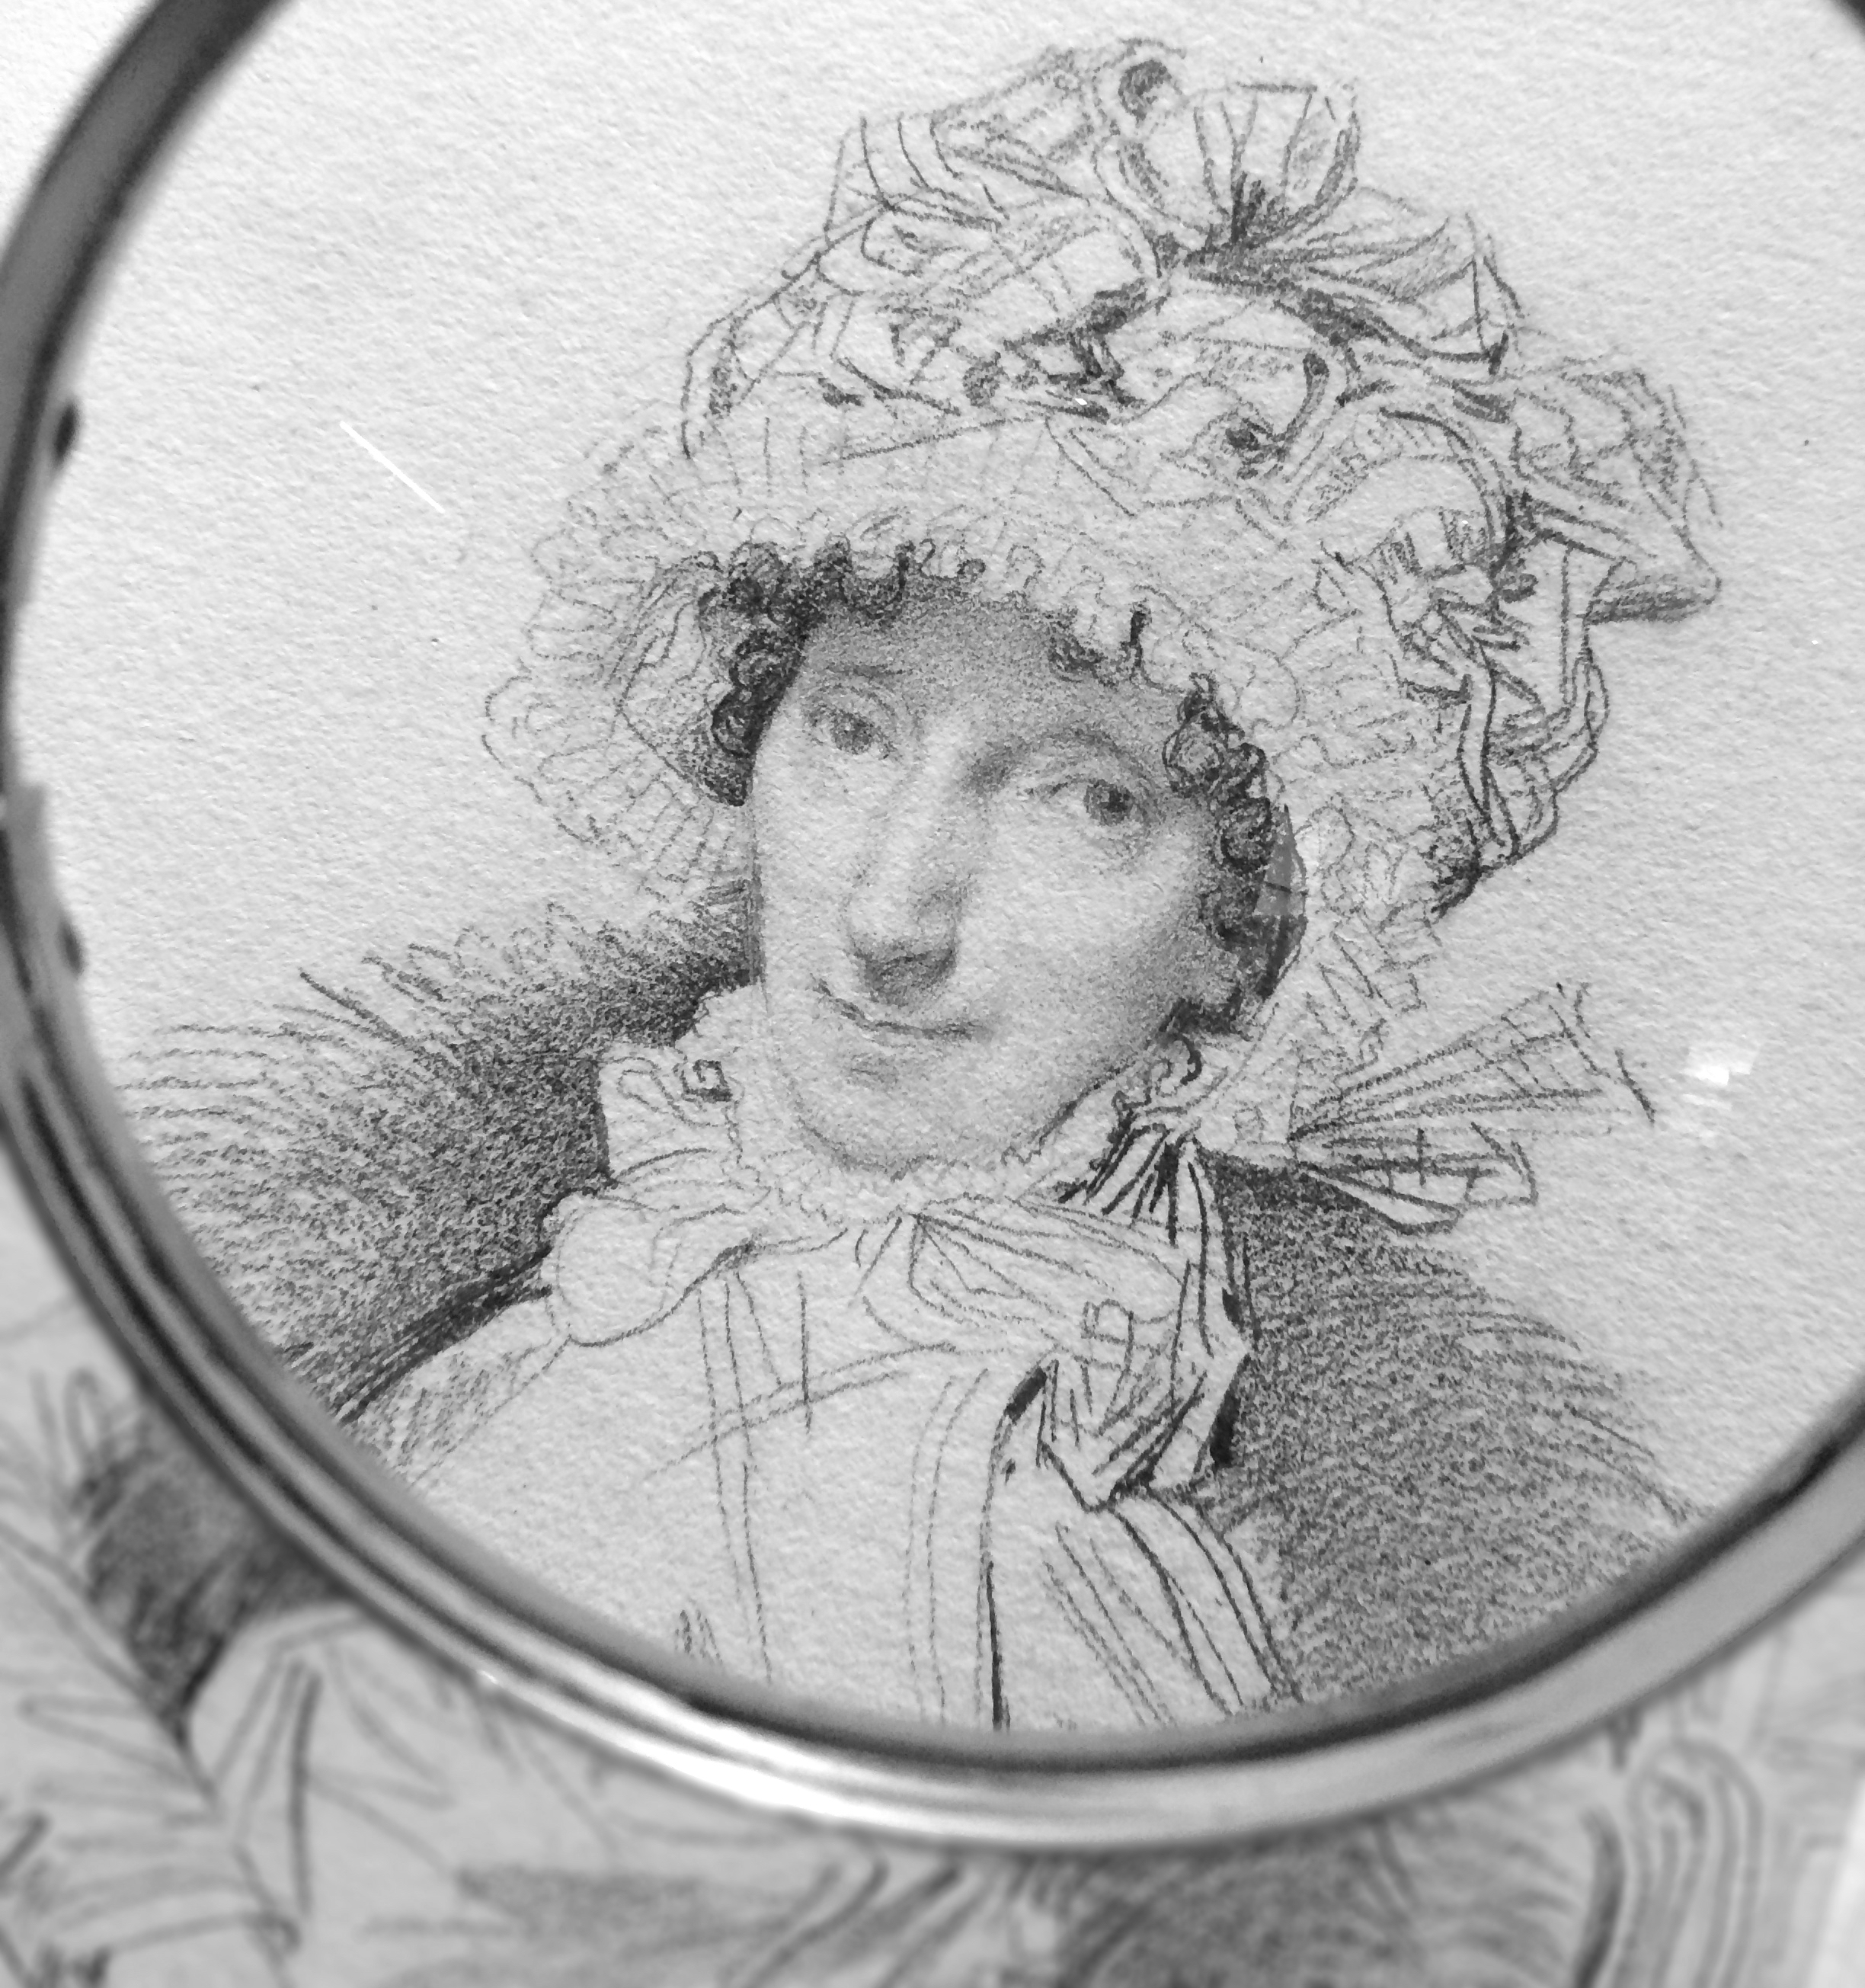 Portrait of Mrs. John Mackie, by Jean-Auguste-Dominique Ingres, 1816. Let's say this drawing took an hour to complete. How much of that time did Ingres use his camera lucida? Maybe five minutes? It's impossible to know for sure. Using a camera lucida for nearly 15 years tells me that skilled artists like Ingres would do most of a detailed drawing like this without optical aids.    (Photo taken by me through magnifying glass while doing research at The Victoria & Albert Museum, London).